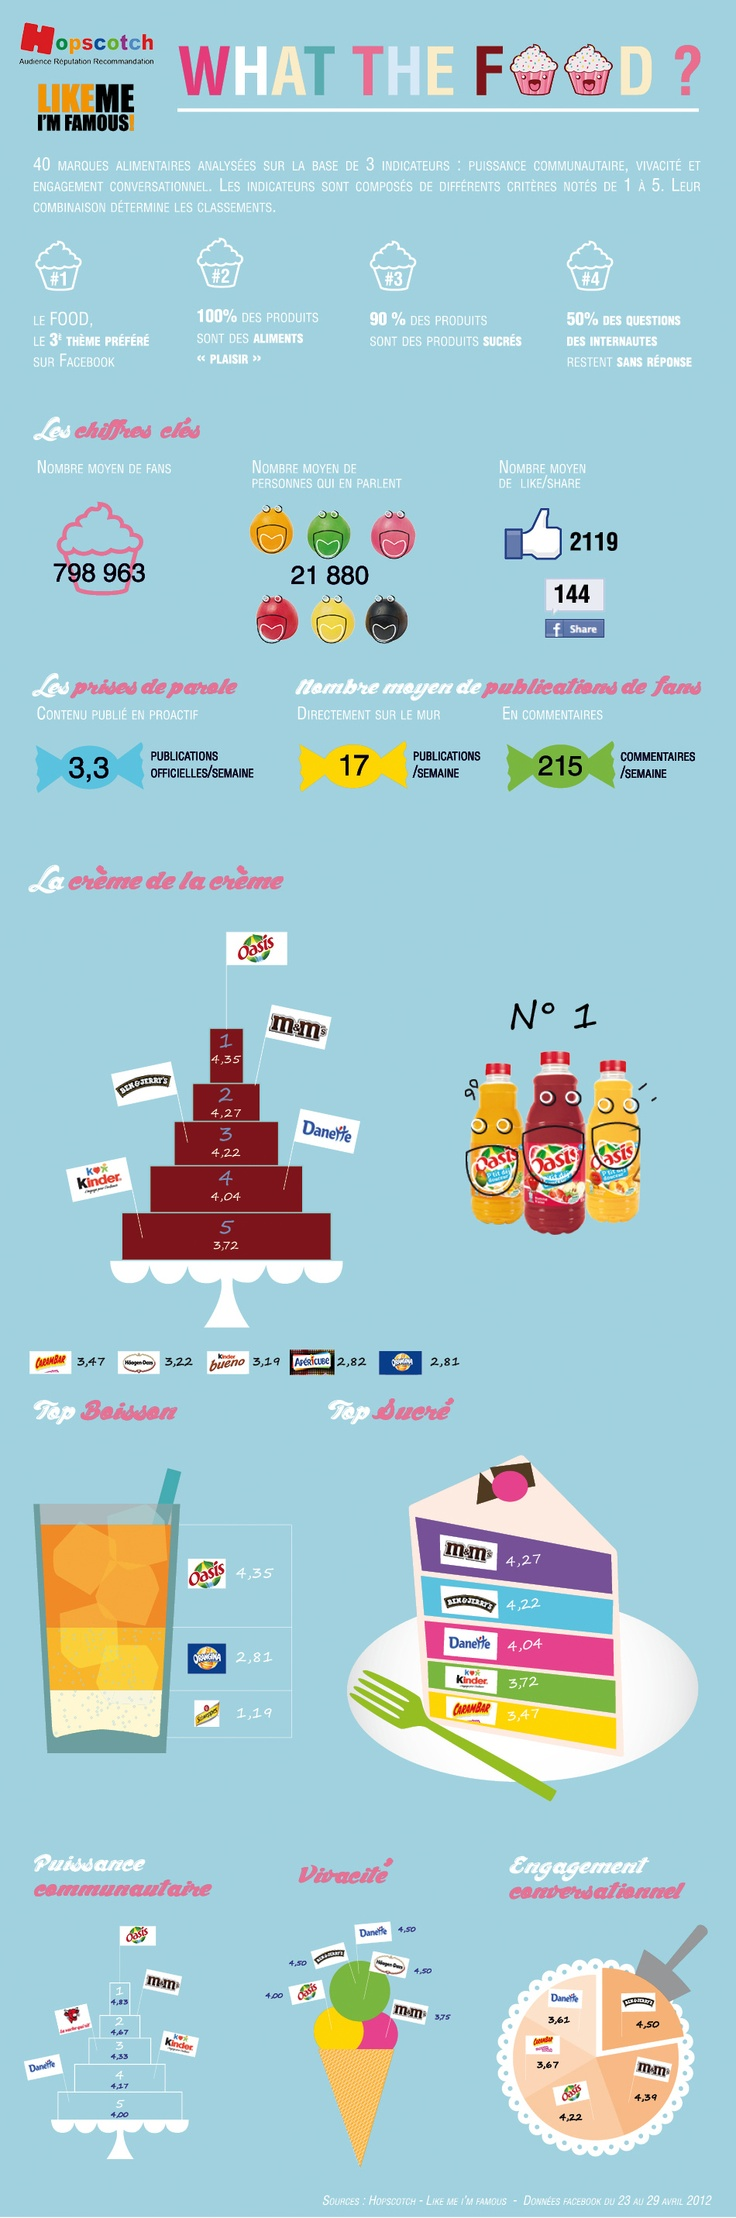 infographie-marques-alimentaires-facebook  www.business-on-line.fr